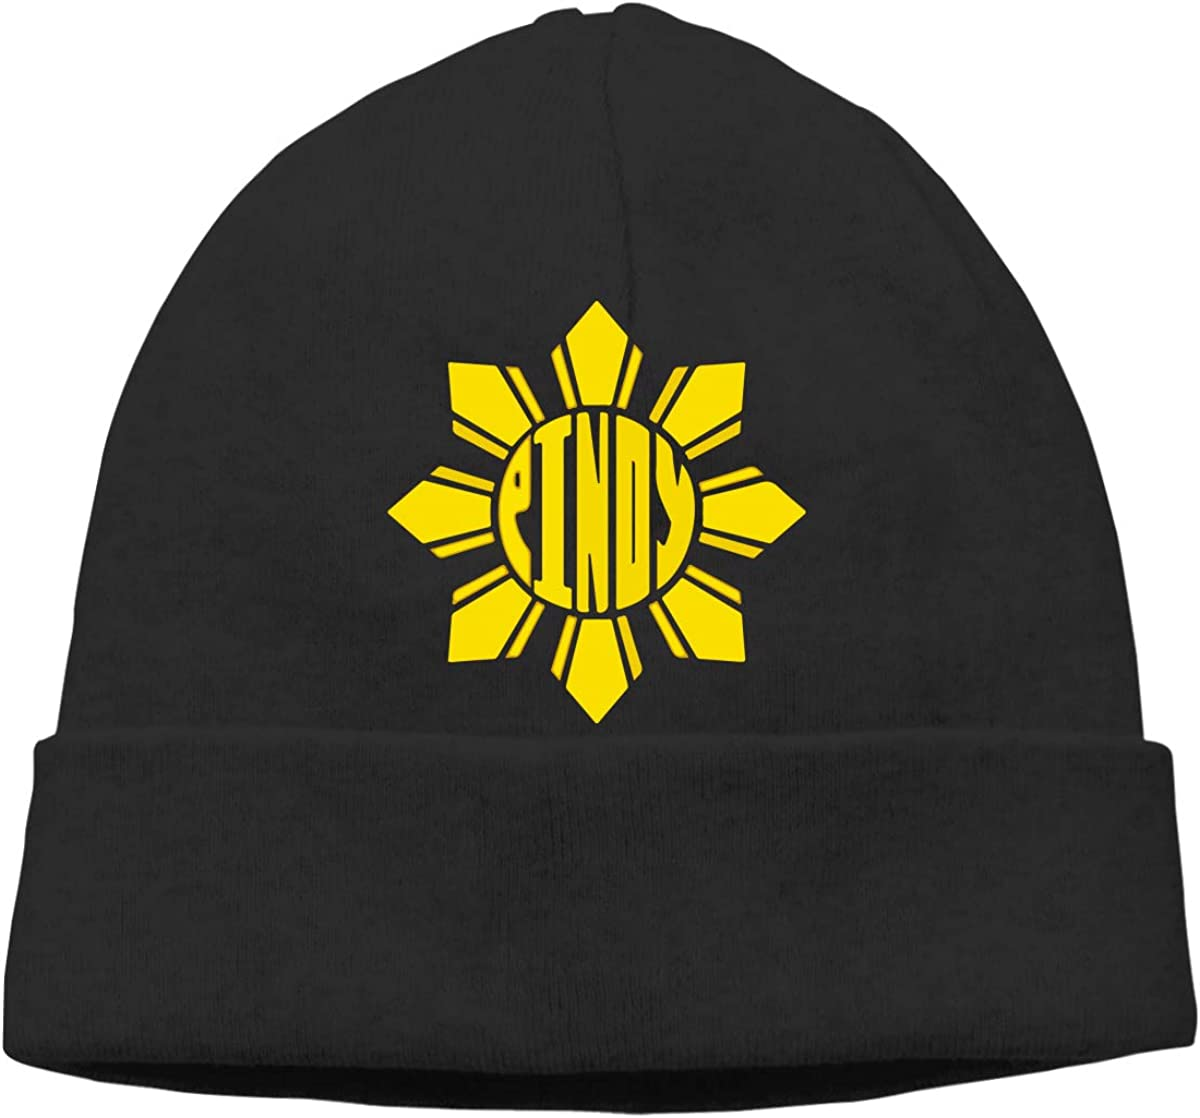 Phillipines Sun Unisex Knitting Wool Warm Winter Ski Beanie Cap